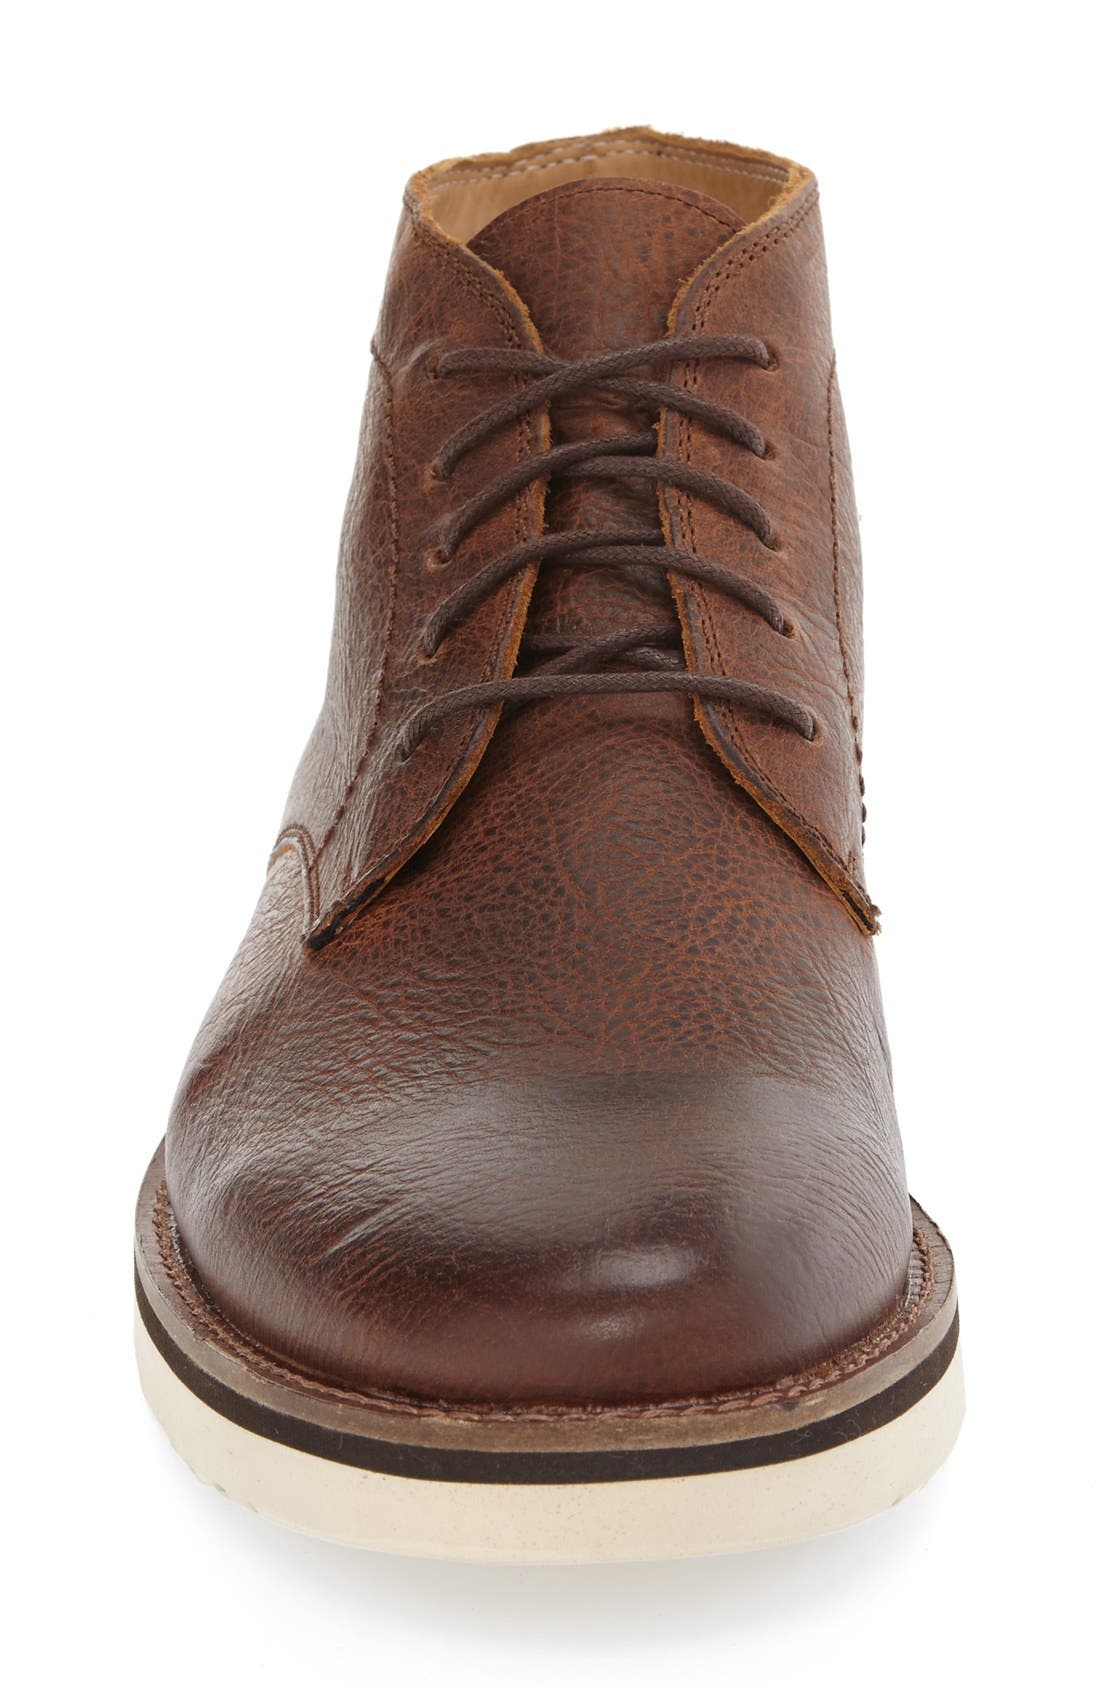 'Farley' Chukka Boot,                             Alternate thumbnail 3, color,                             Caramel Leather